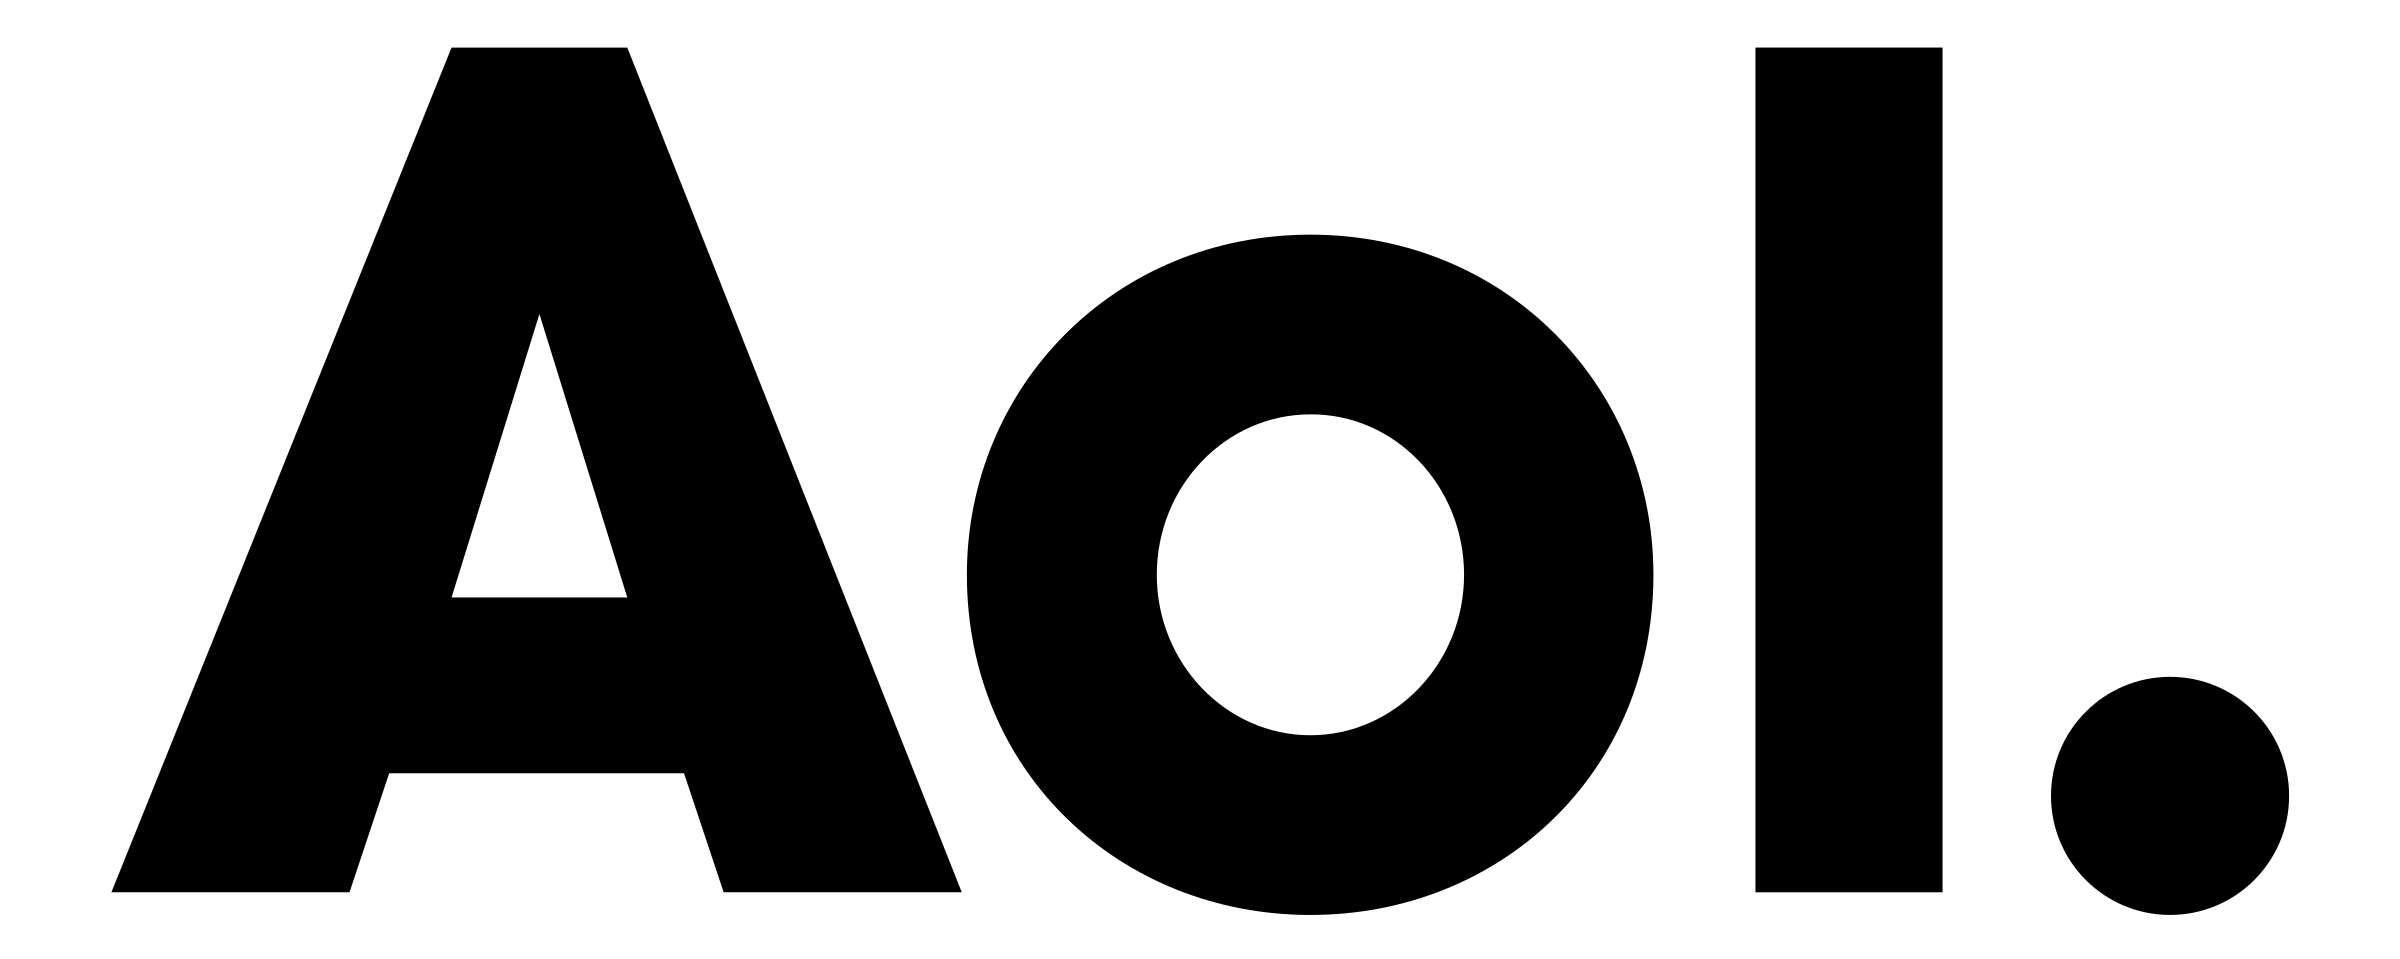 AOL Logo PNG Transparent & SVG Vector